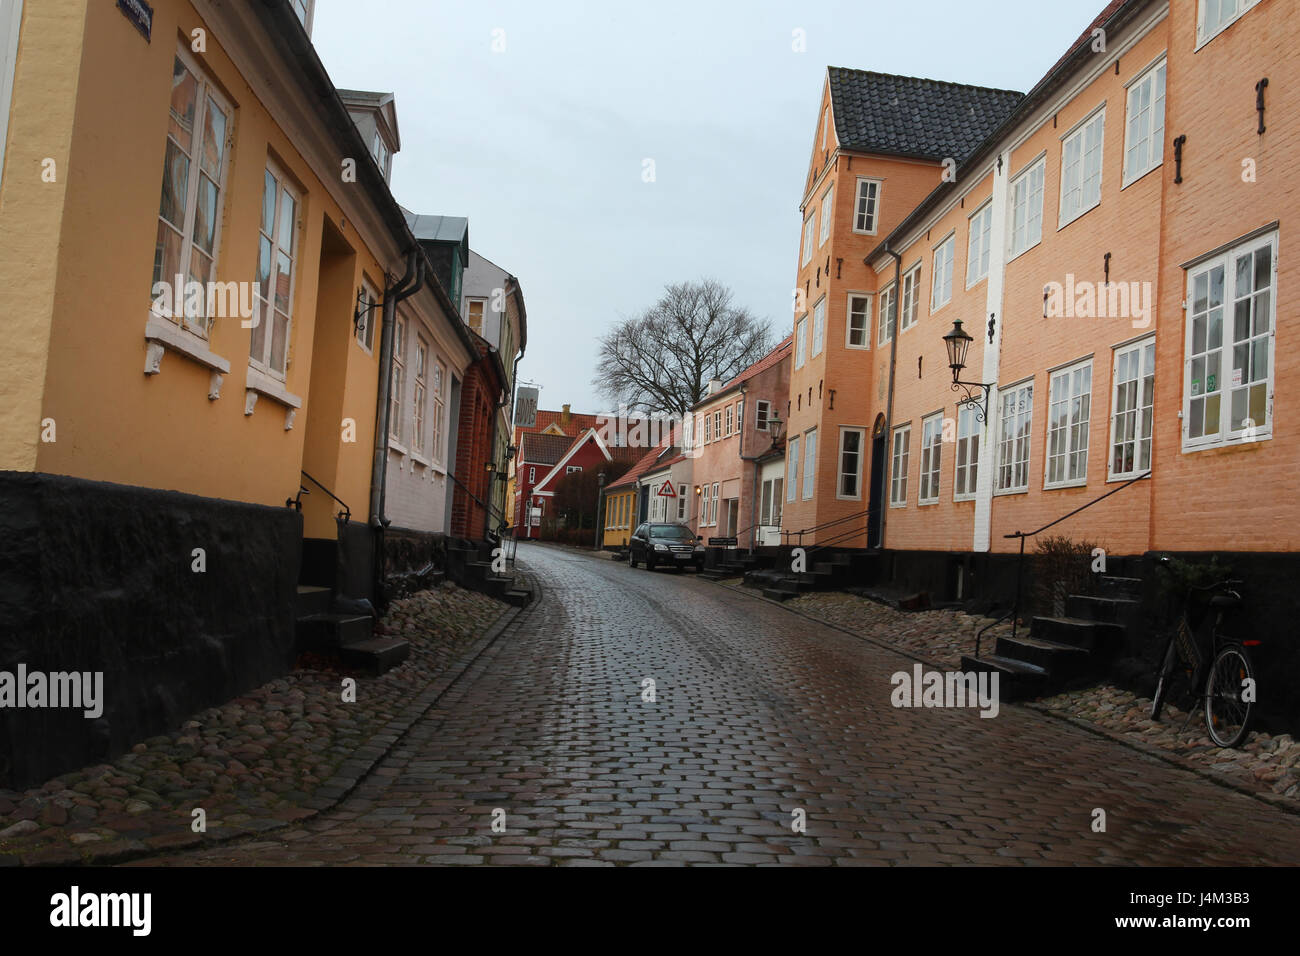 Streets and houses on Aero Island, Denmark. - Stock Image